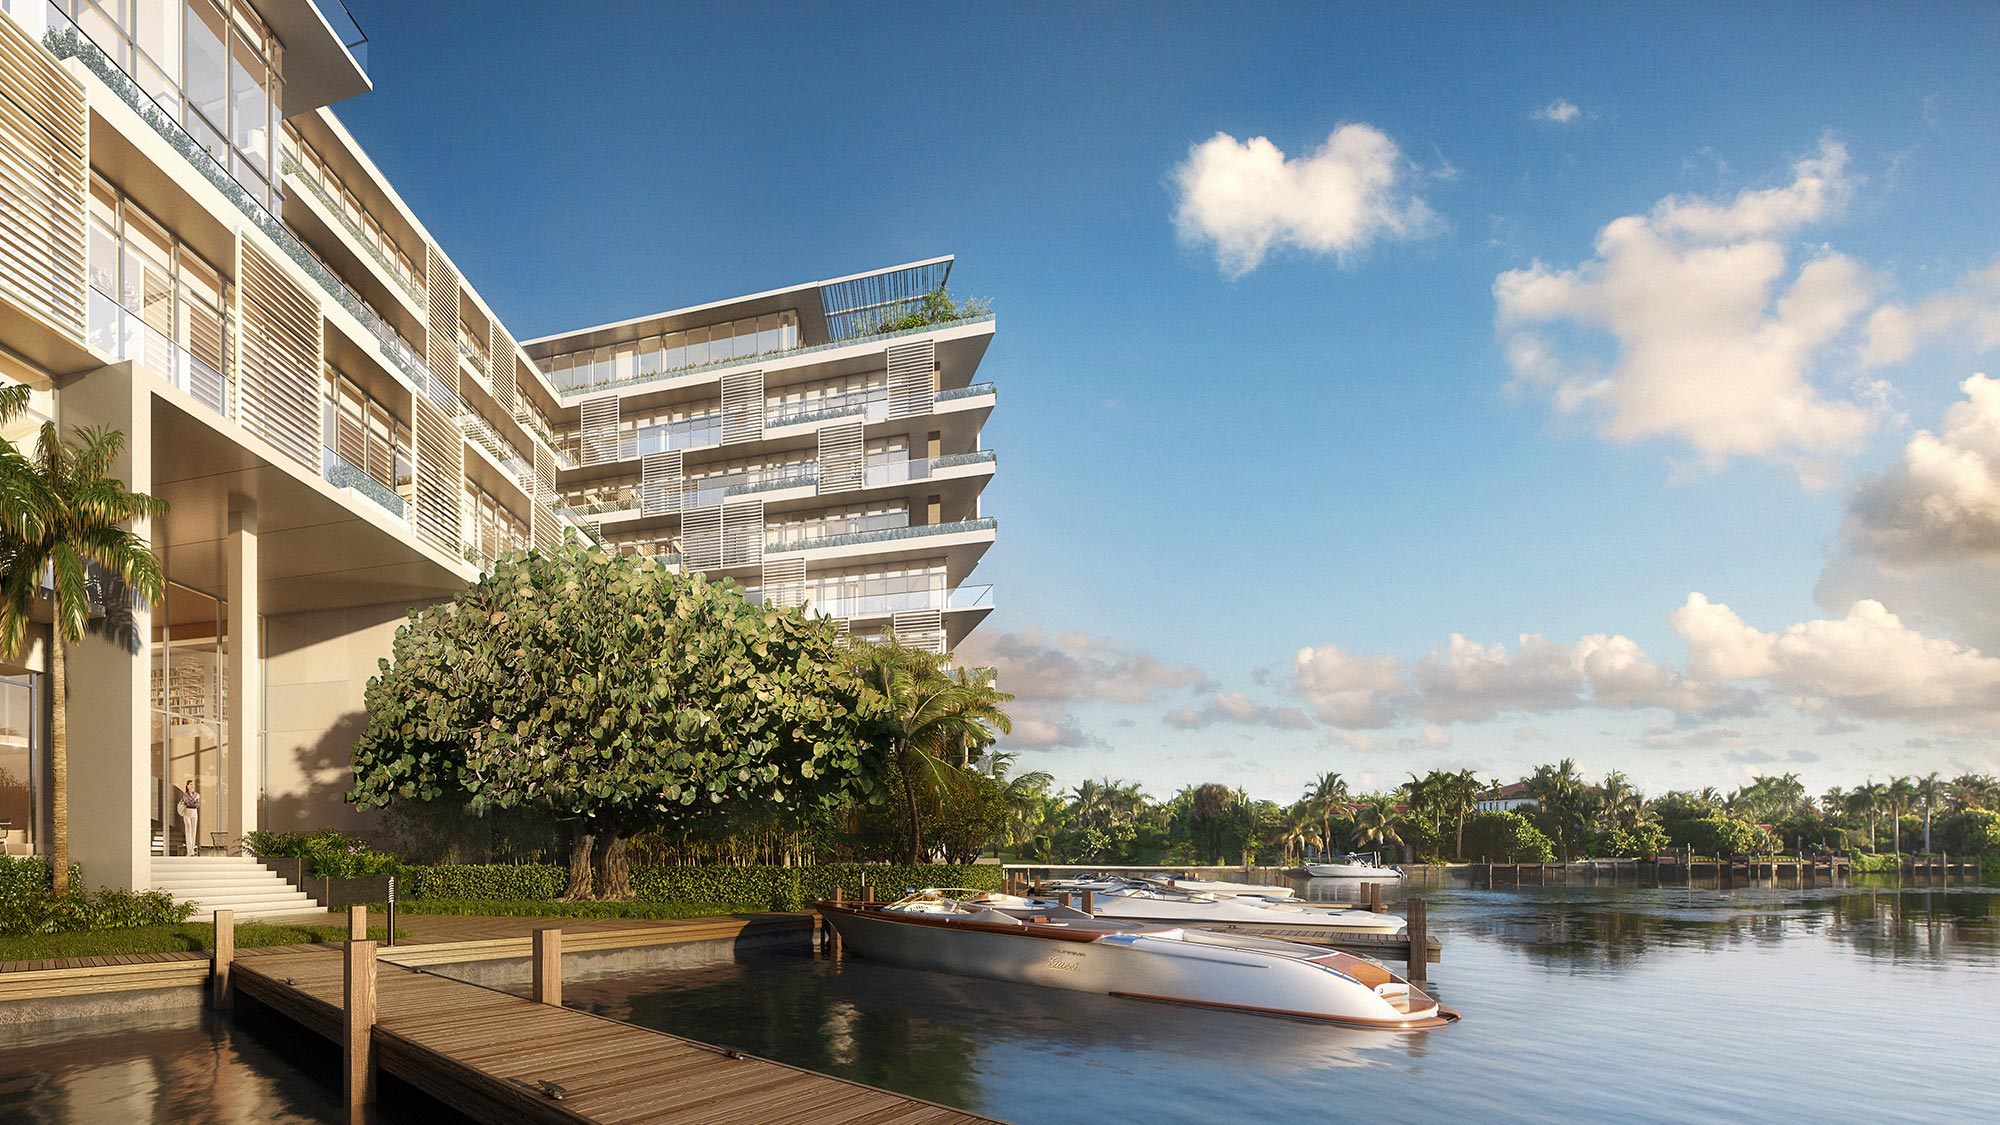 Dockside Boat Slips at the Miami luxury condos of The Ritz-Carlton Residences, Miami Beach